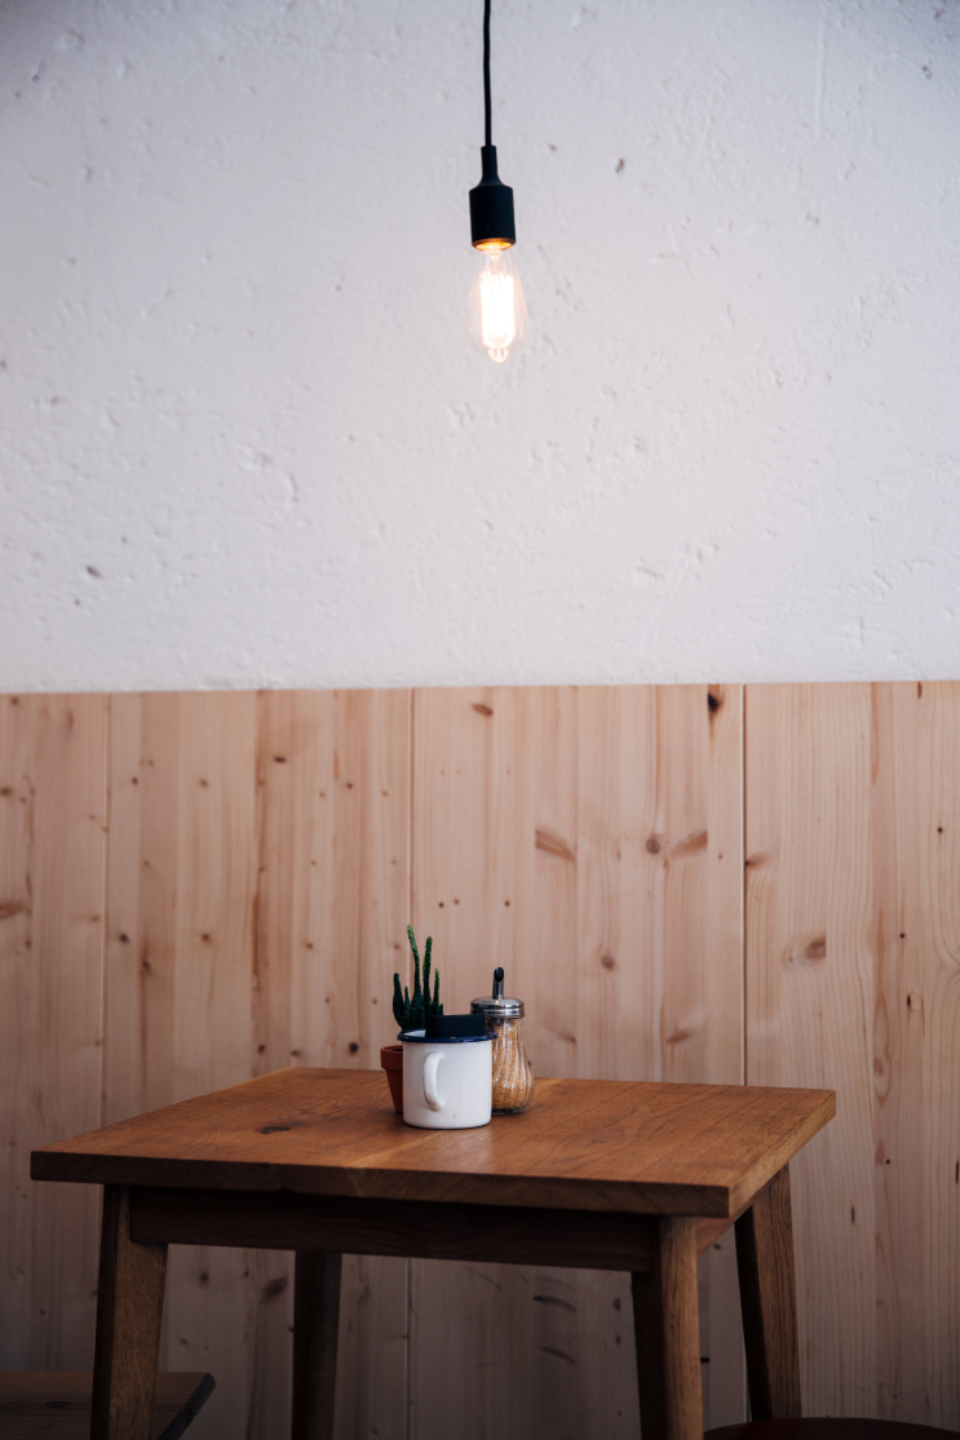 cafe table lighting simple clean minimal restaurant cup food drinks indoors wooden empty coffee beverage